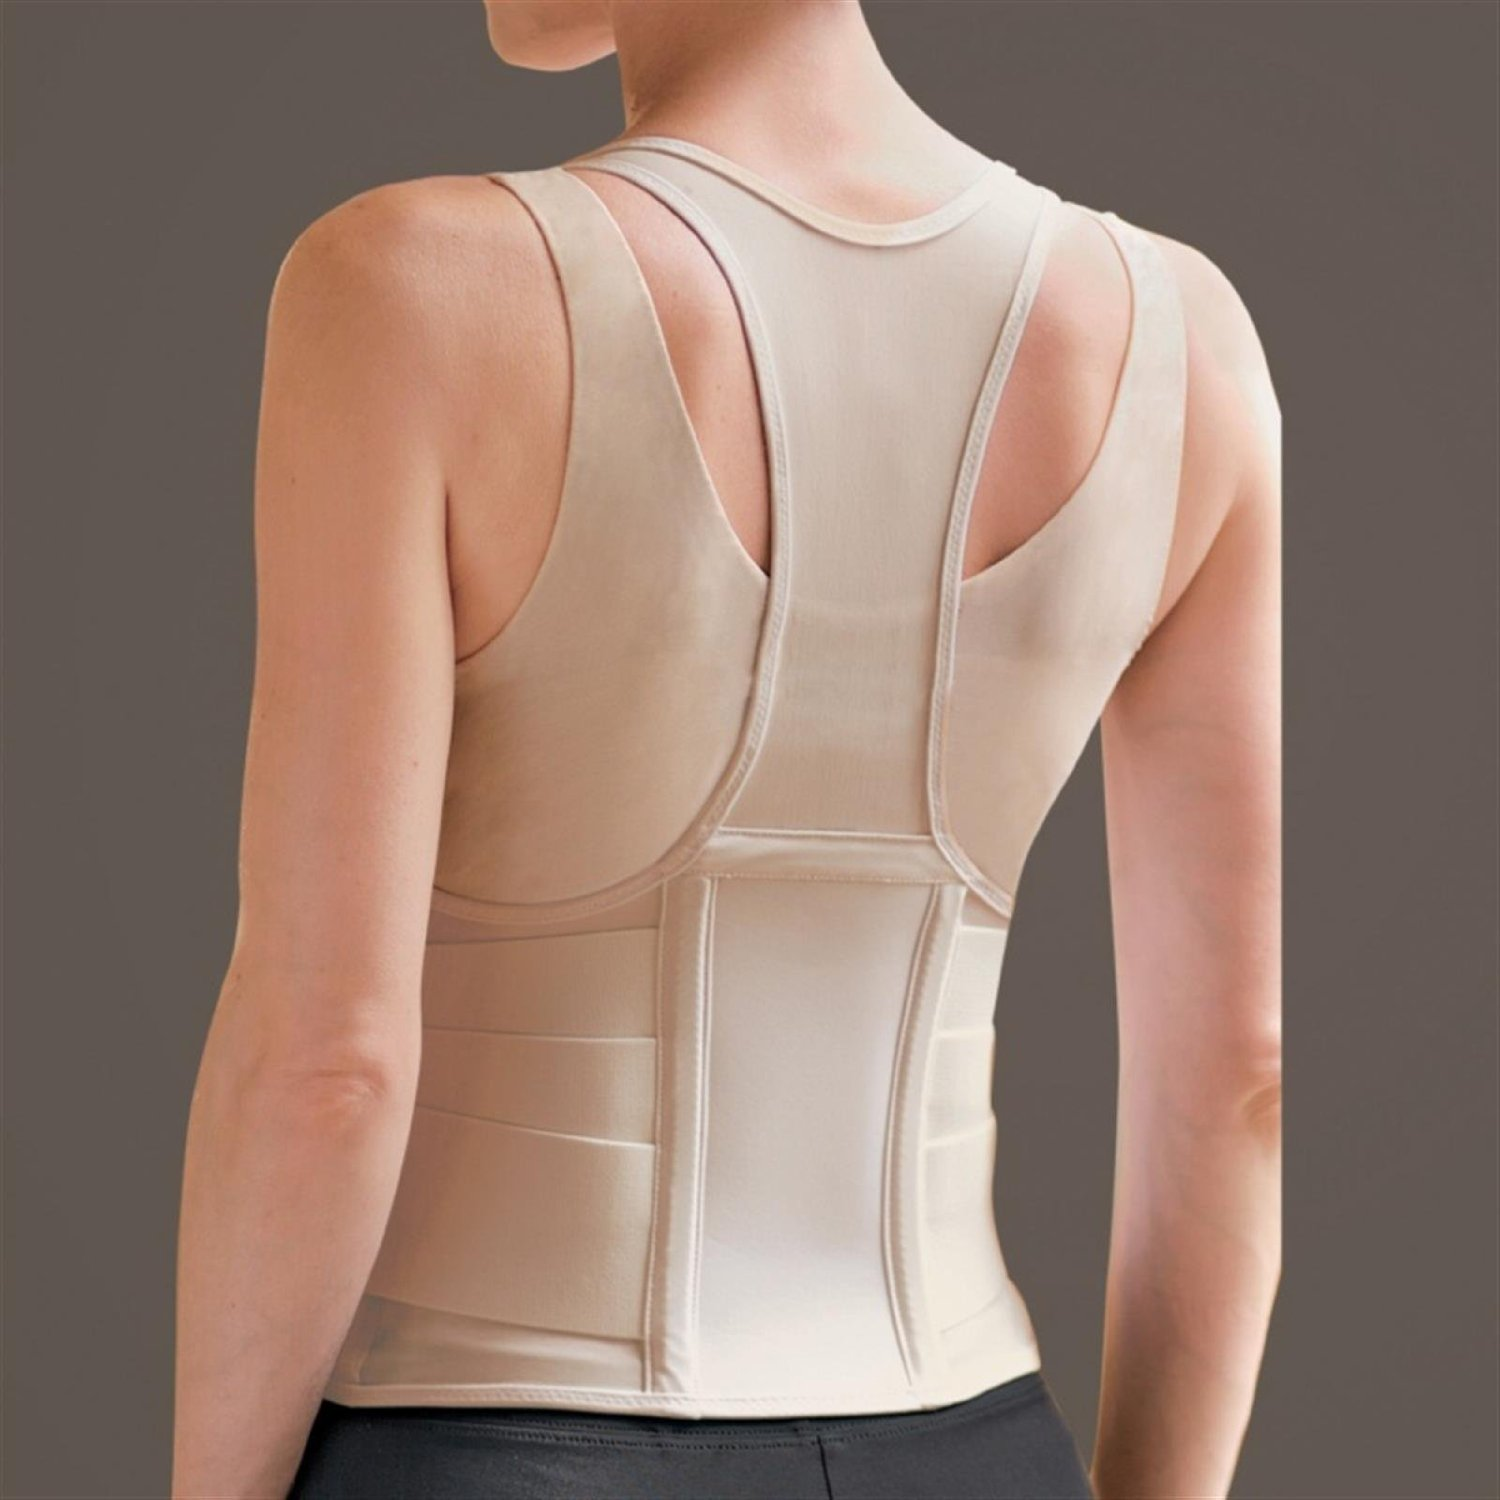 Cincher Women's - Best Posture Brace